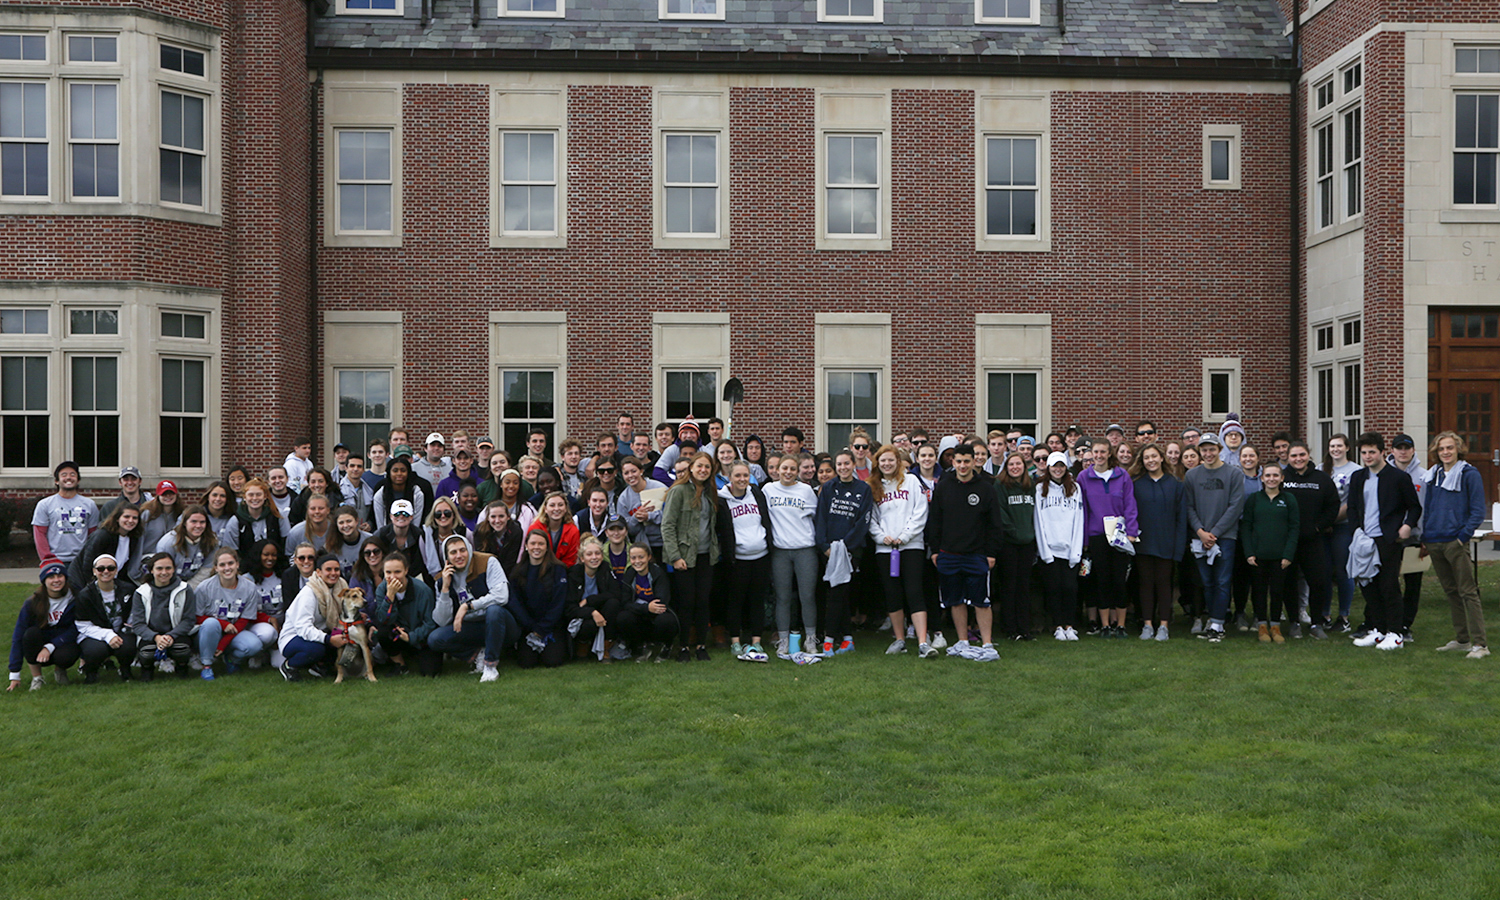 Students participating in the annual fall Day of Service gather for a group photo in front of Stern Hall.